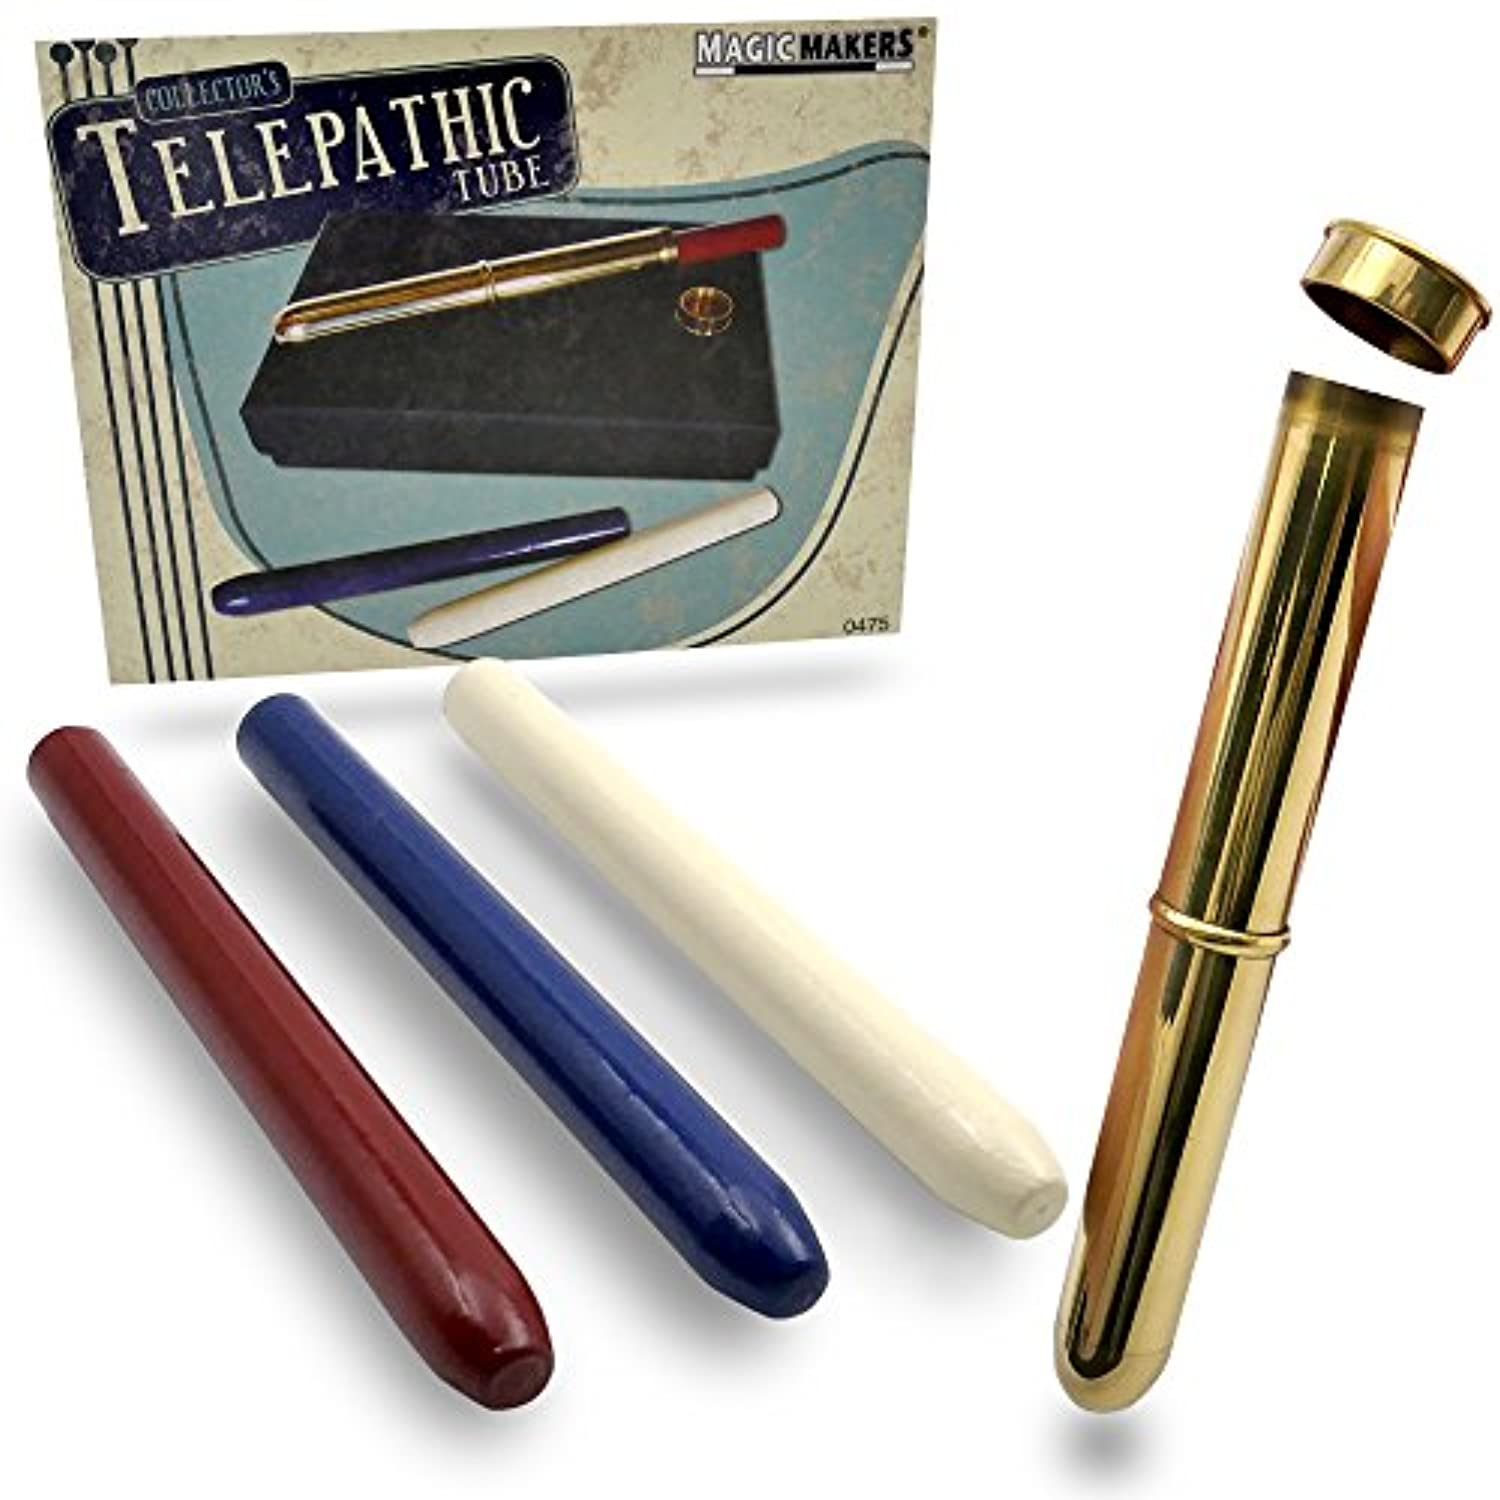 Telepathic Tube By Magic Makers